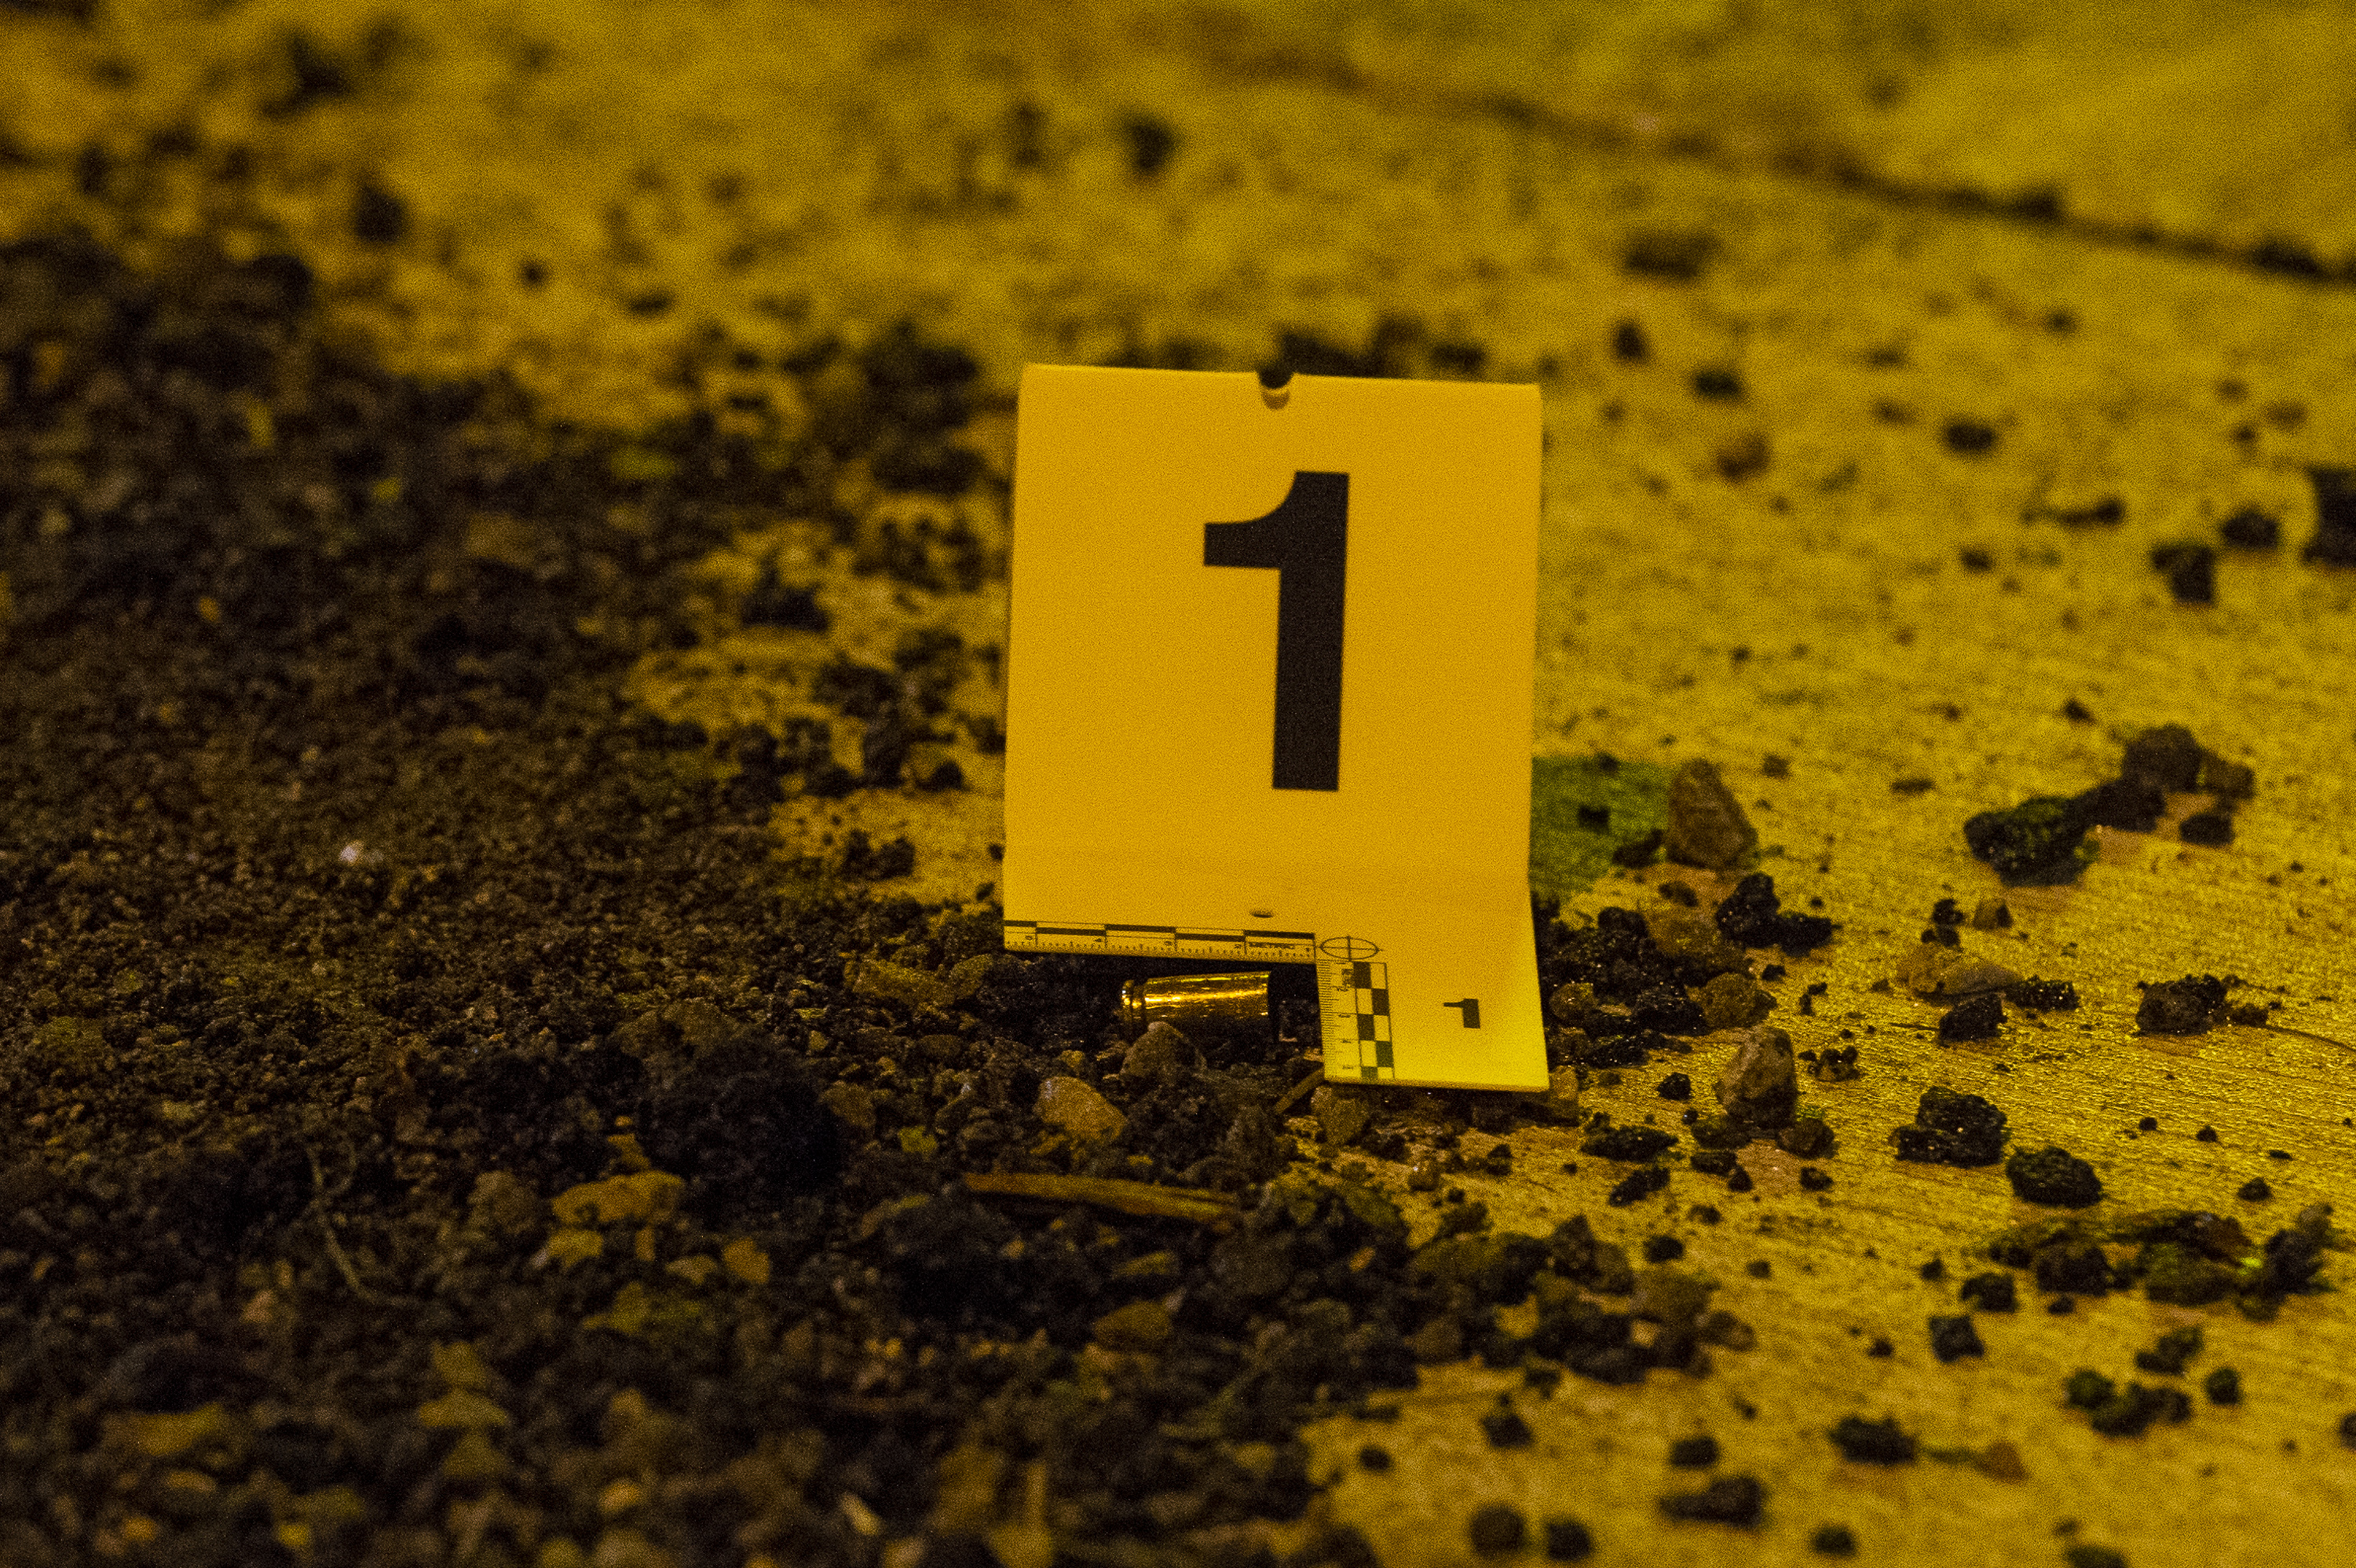 A woman was shot to death April 19, 2020, in Grand Crossing.